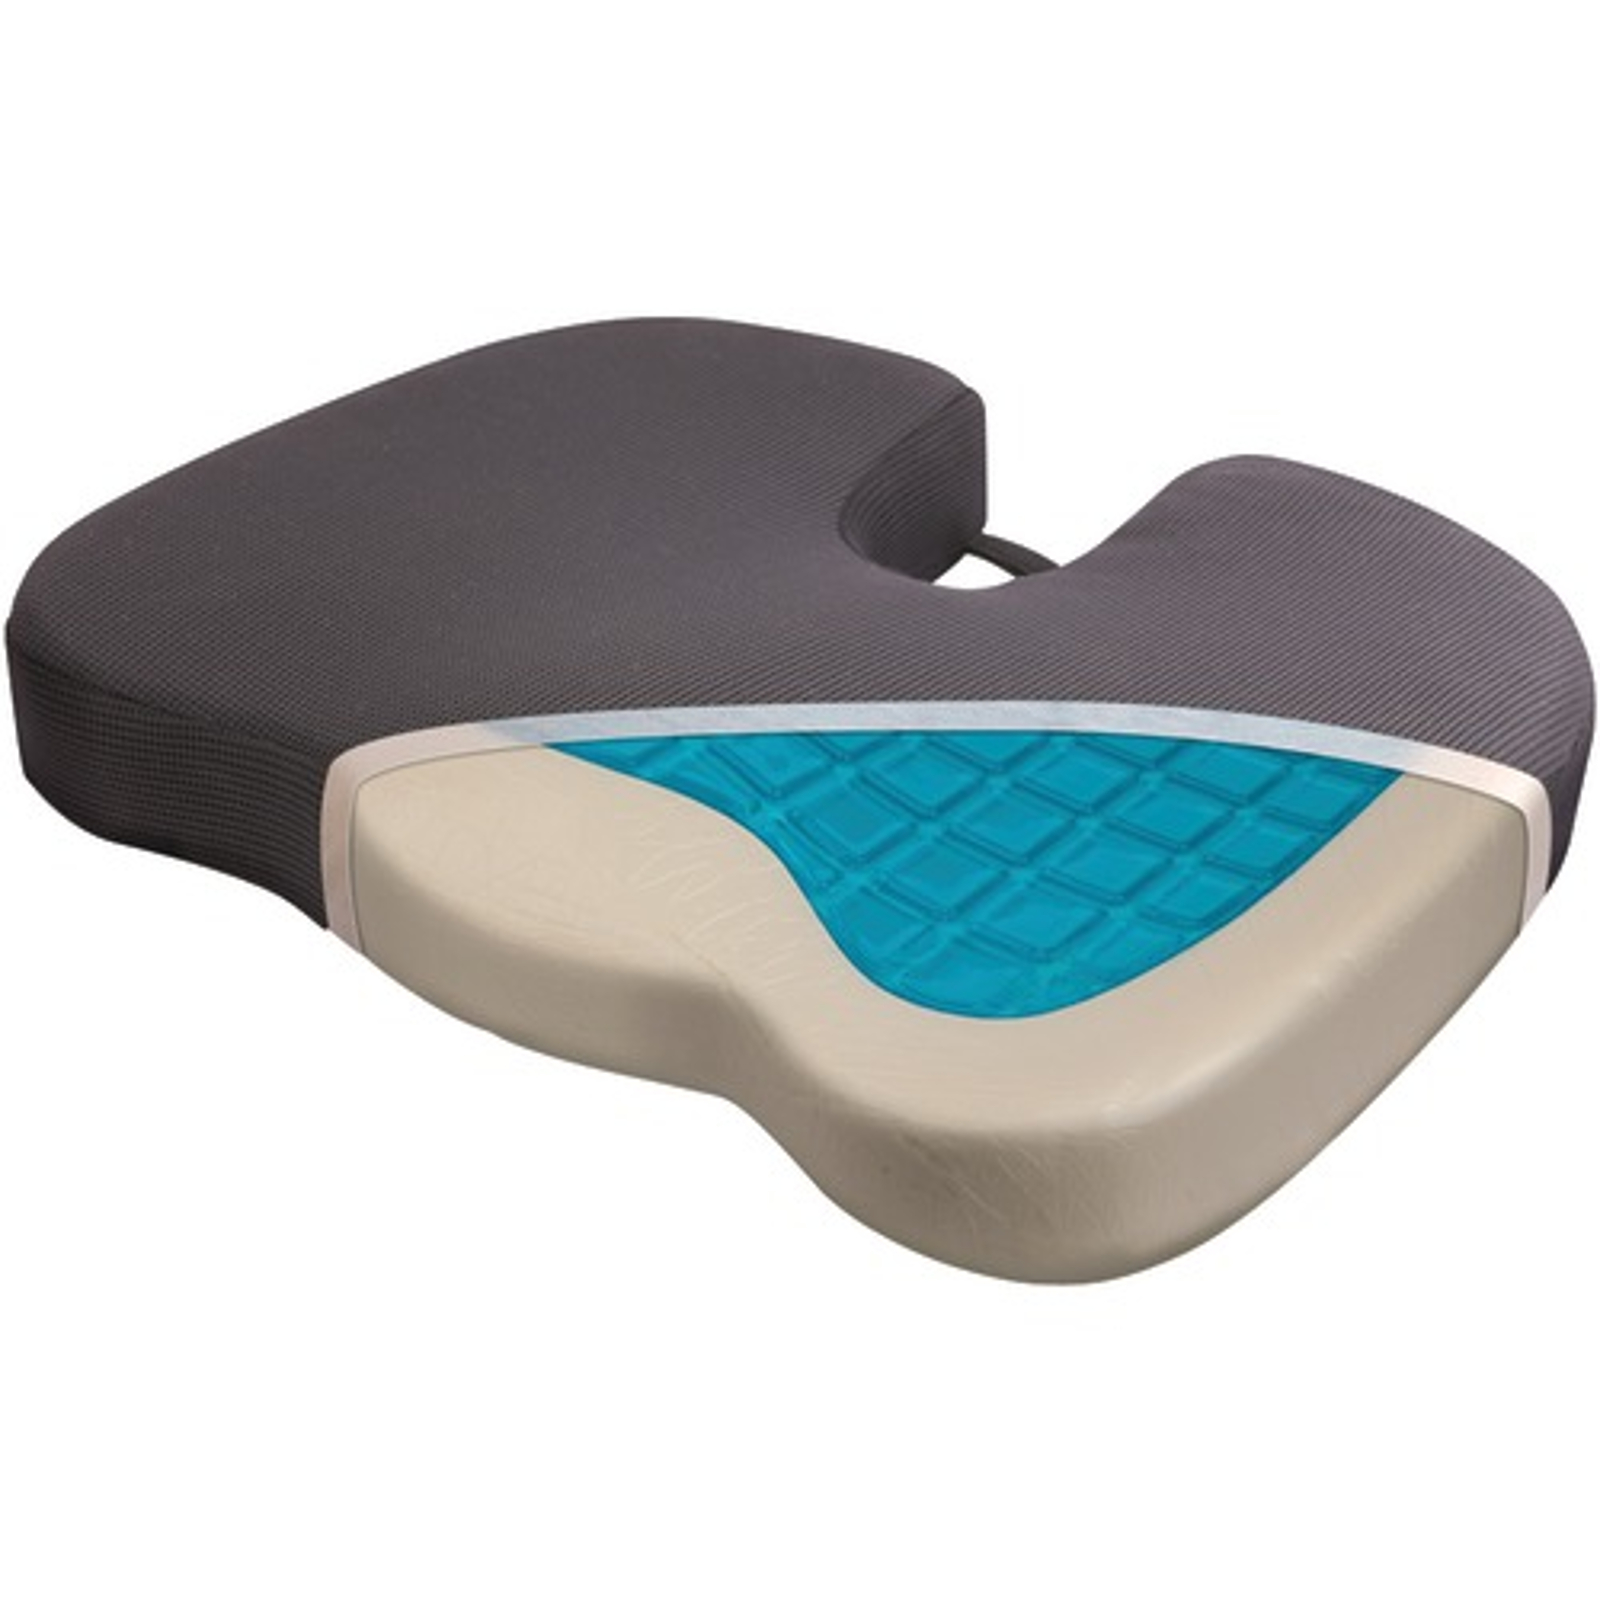 gel cushion for chair sliding shower wagan relaxfusion coccyx seat